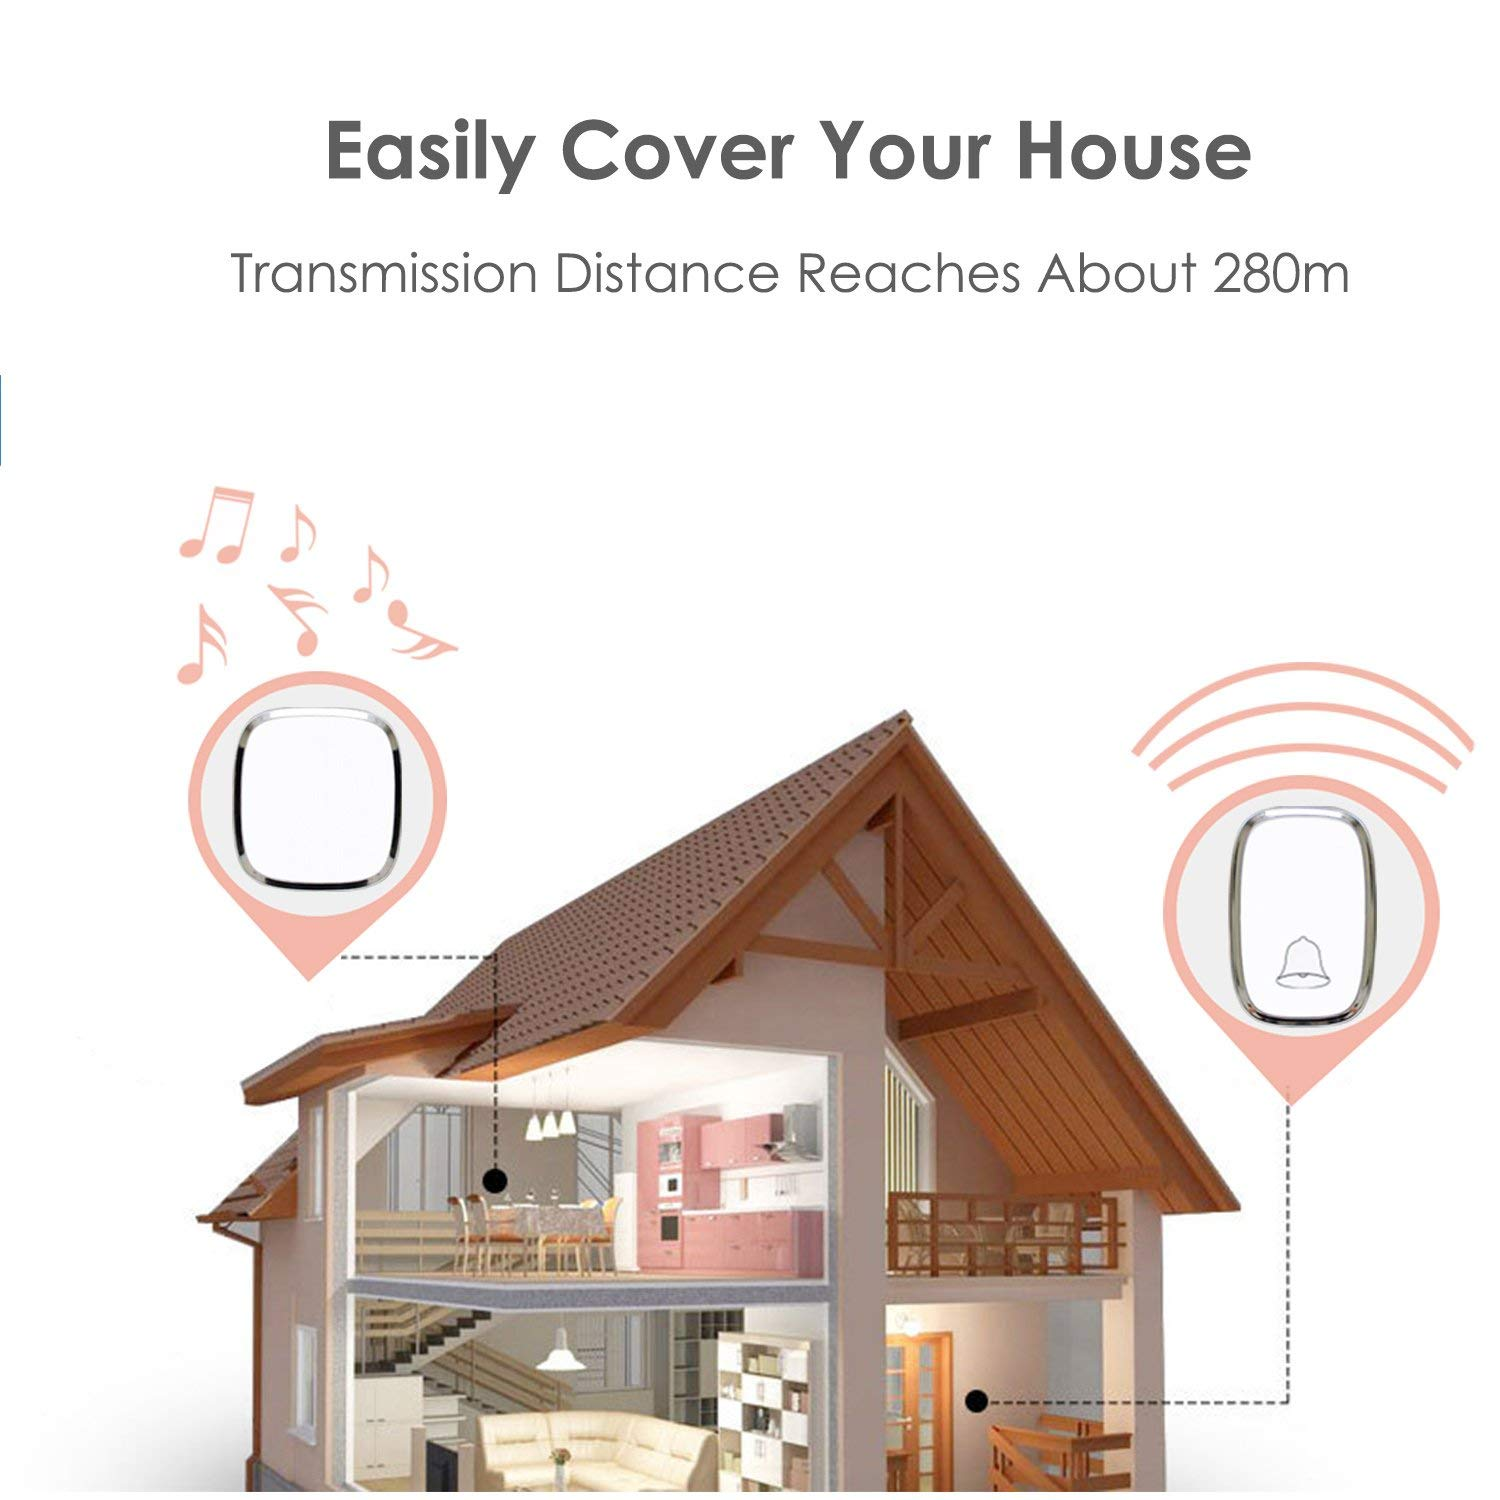 Wireless Doorbell, Waterproof Door Bell, Wall Plug-in Cordless Chime, 300m/1000ft Range, 36 Melodies to Choose, 4 Level Volume, White